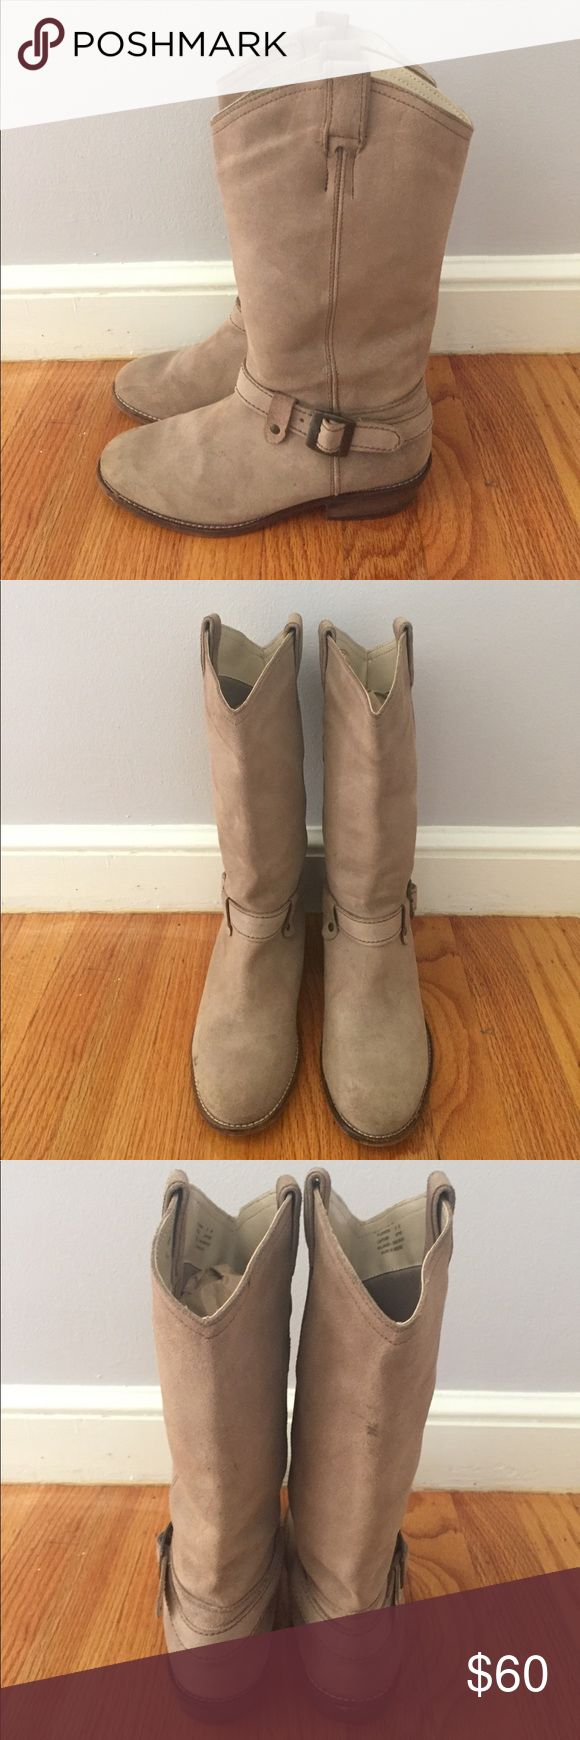 """Steve Madden Tan Taupe Suede Cowboy Boots Sz 8M🍁 In excellent used condition. Steve Madden Tan Taupe Suede Cowboy Boots in women's Sz 8M. Pull up style, no zippers. Fits true to size. Some minor scuffs and marks, will definitely benefit from a suede cleaner😉.  1"""" heel and 10.25"""" tall shaft. Has the classic buckle detail around the ankle. Goes with everything!😍😍 Steve Madden Shoes Heeled Boots"""